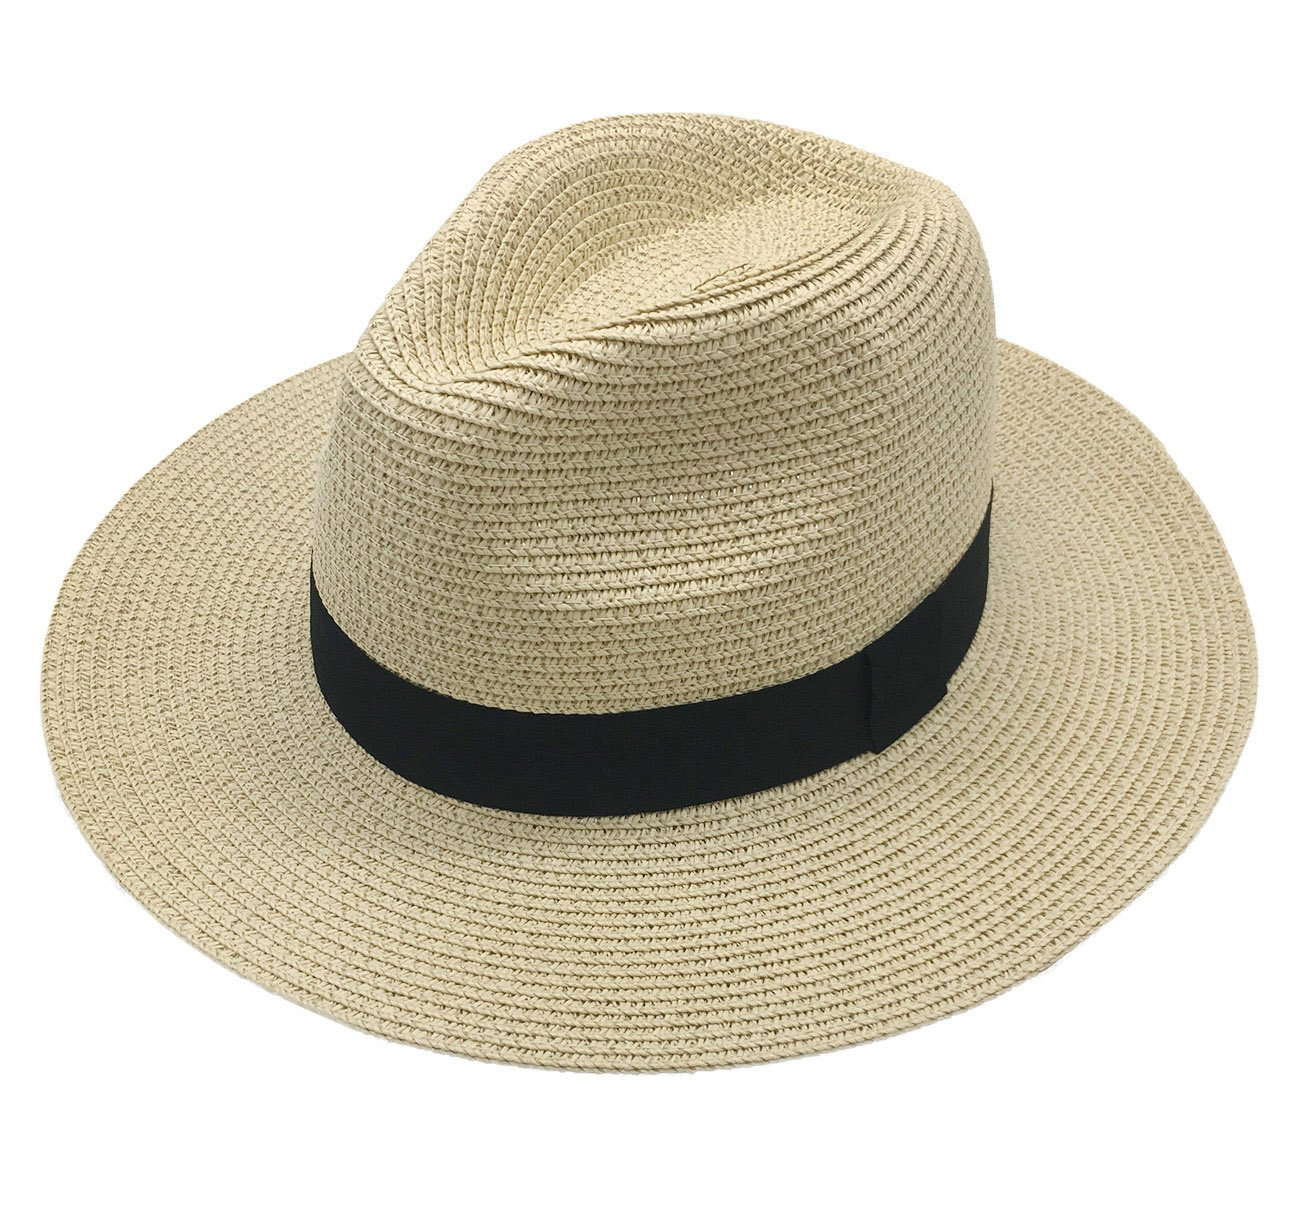 Straw Sun Hat Women Summer Fashion Fedora Wide Brim Paname Hat Packable Travel Beach Floppy Beige